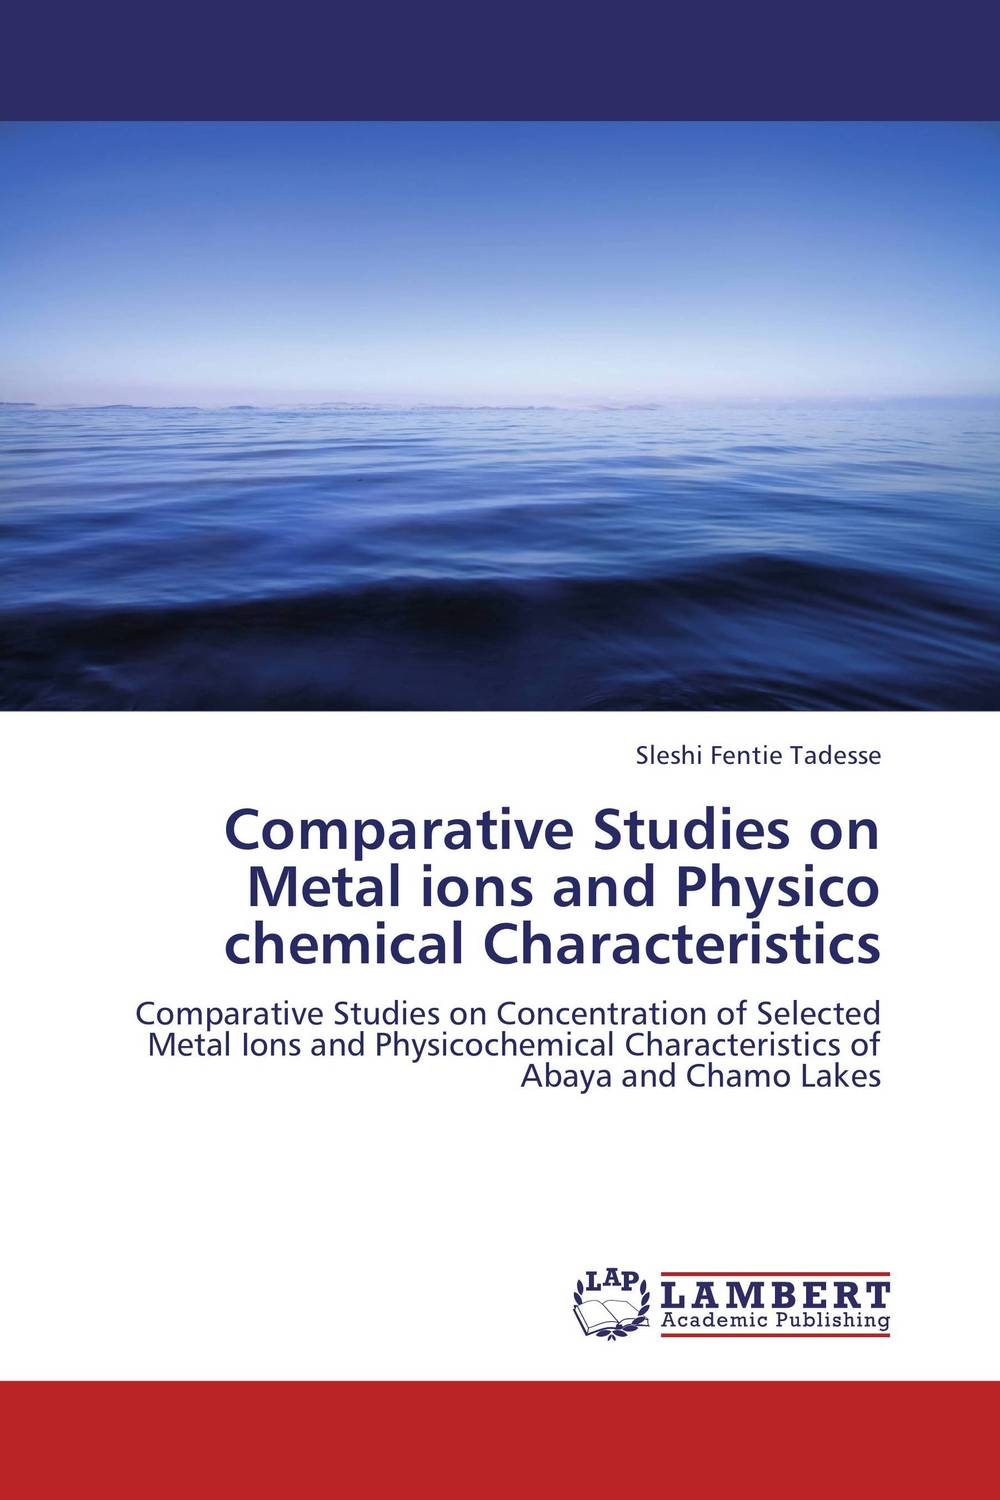 Comparative Studies on Metal ions and Physico chemical Characteristics week at the lake